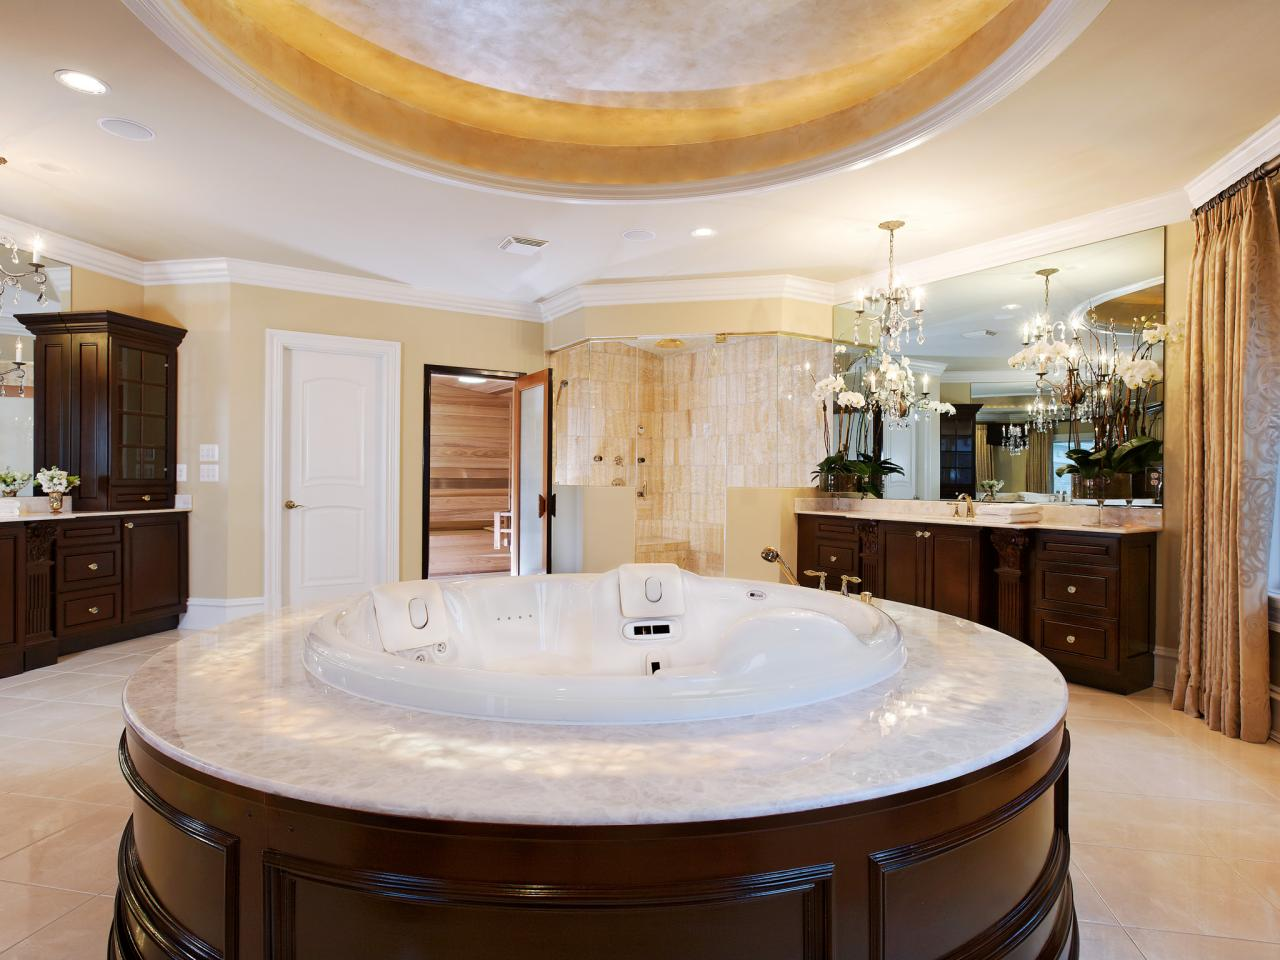 Whirlpool tub designs and options hgtv pictures tips hgtv for Jet tub bathroom designs